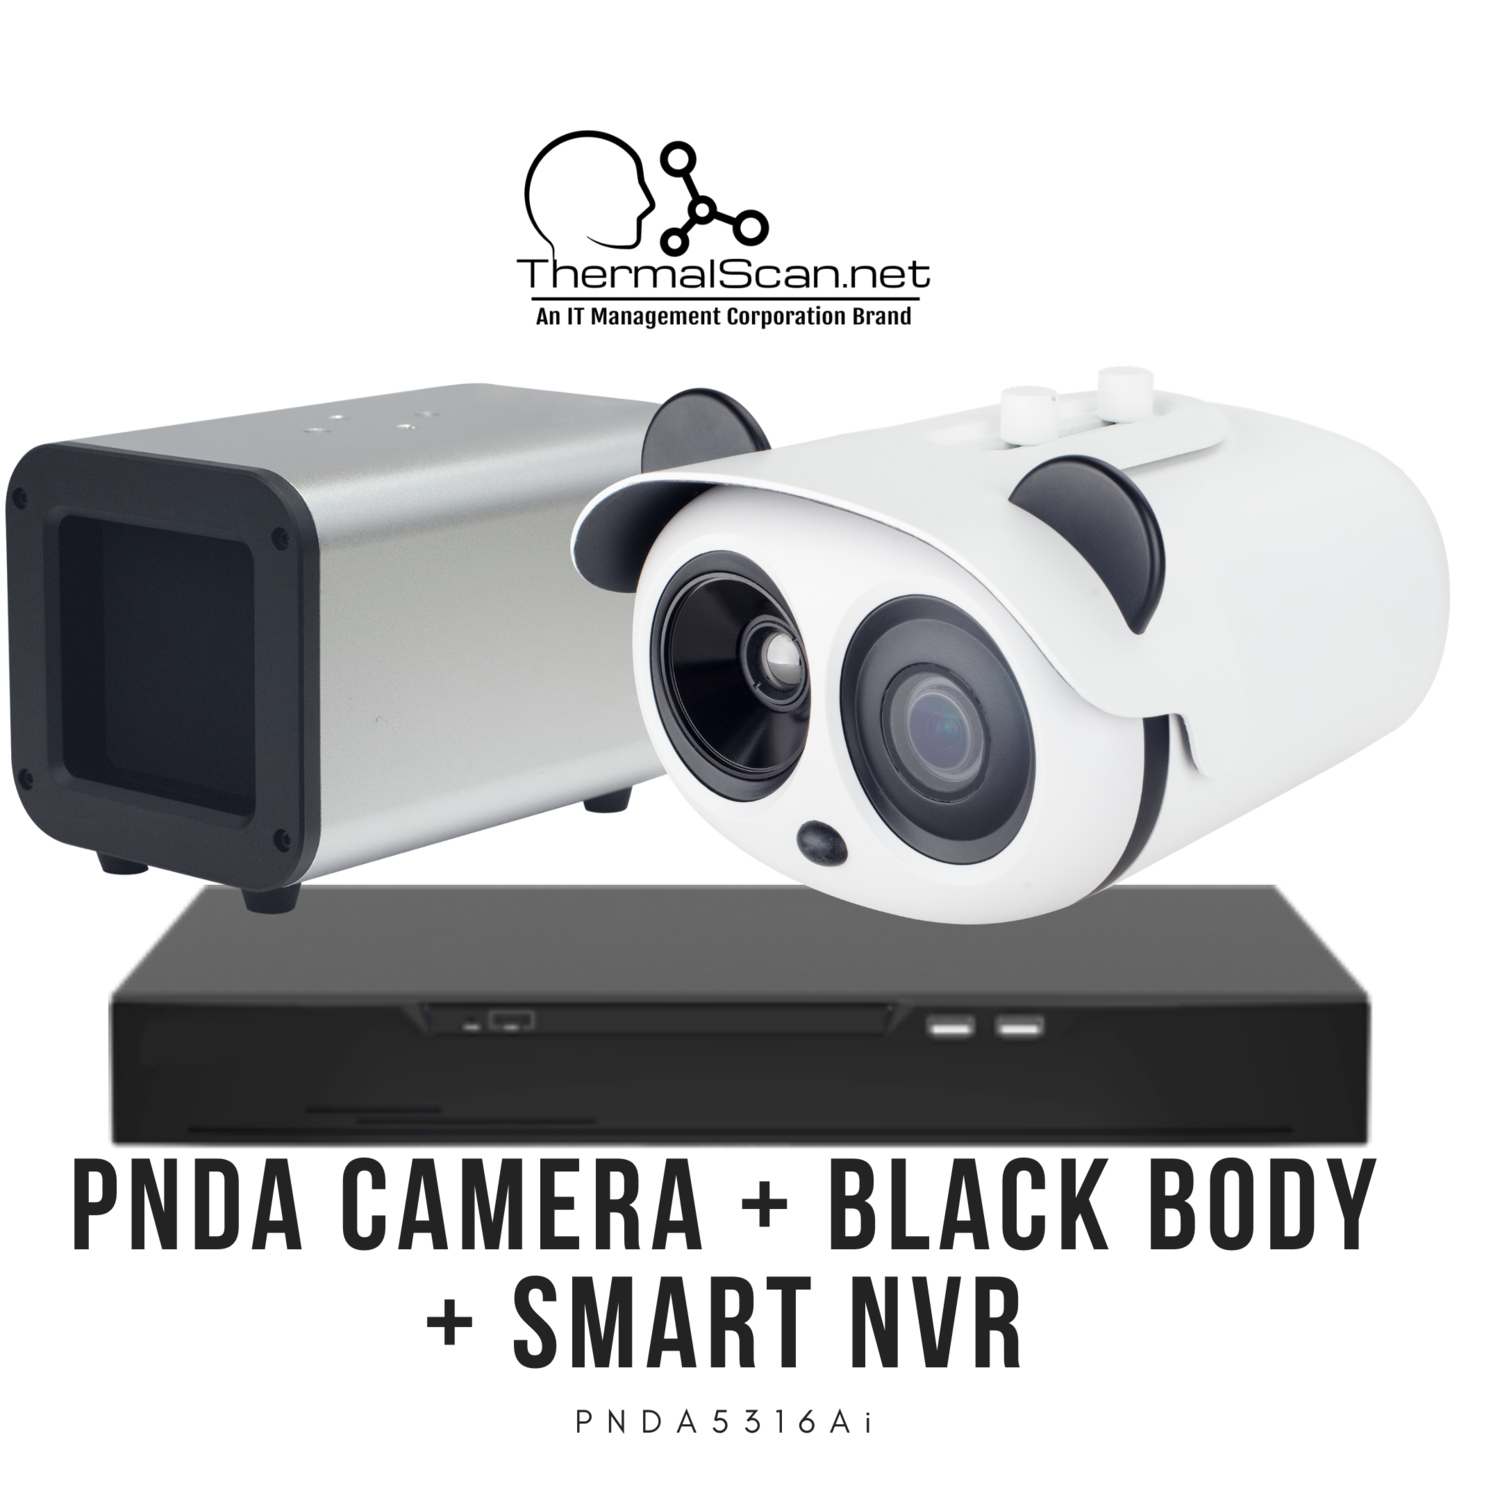 PNDA Thermal Camera + BlackBody + Smart NVR